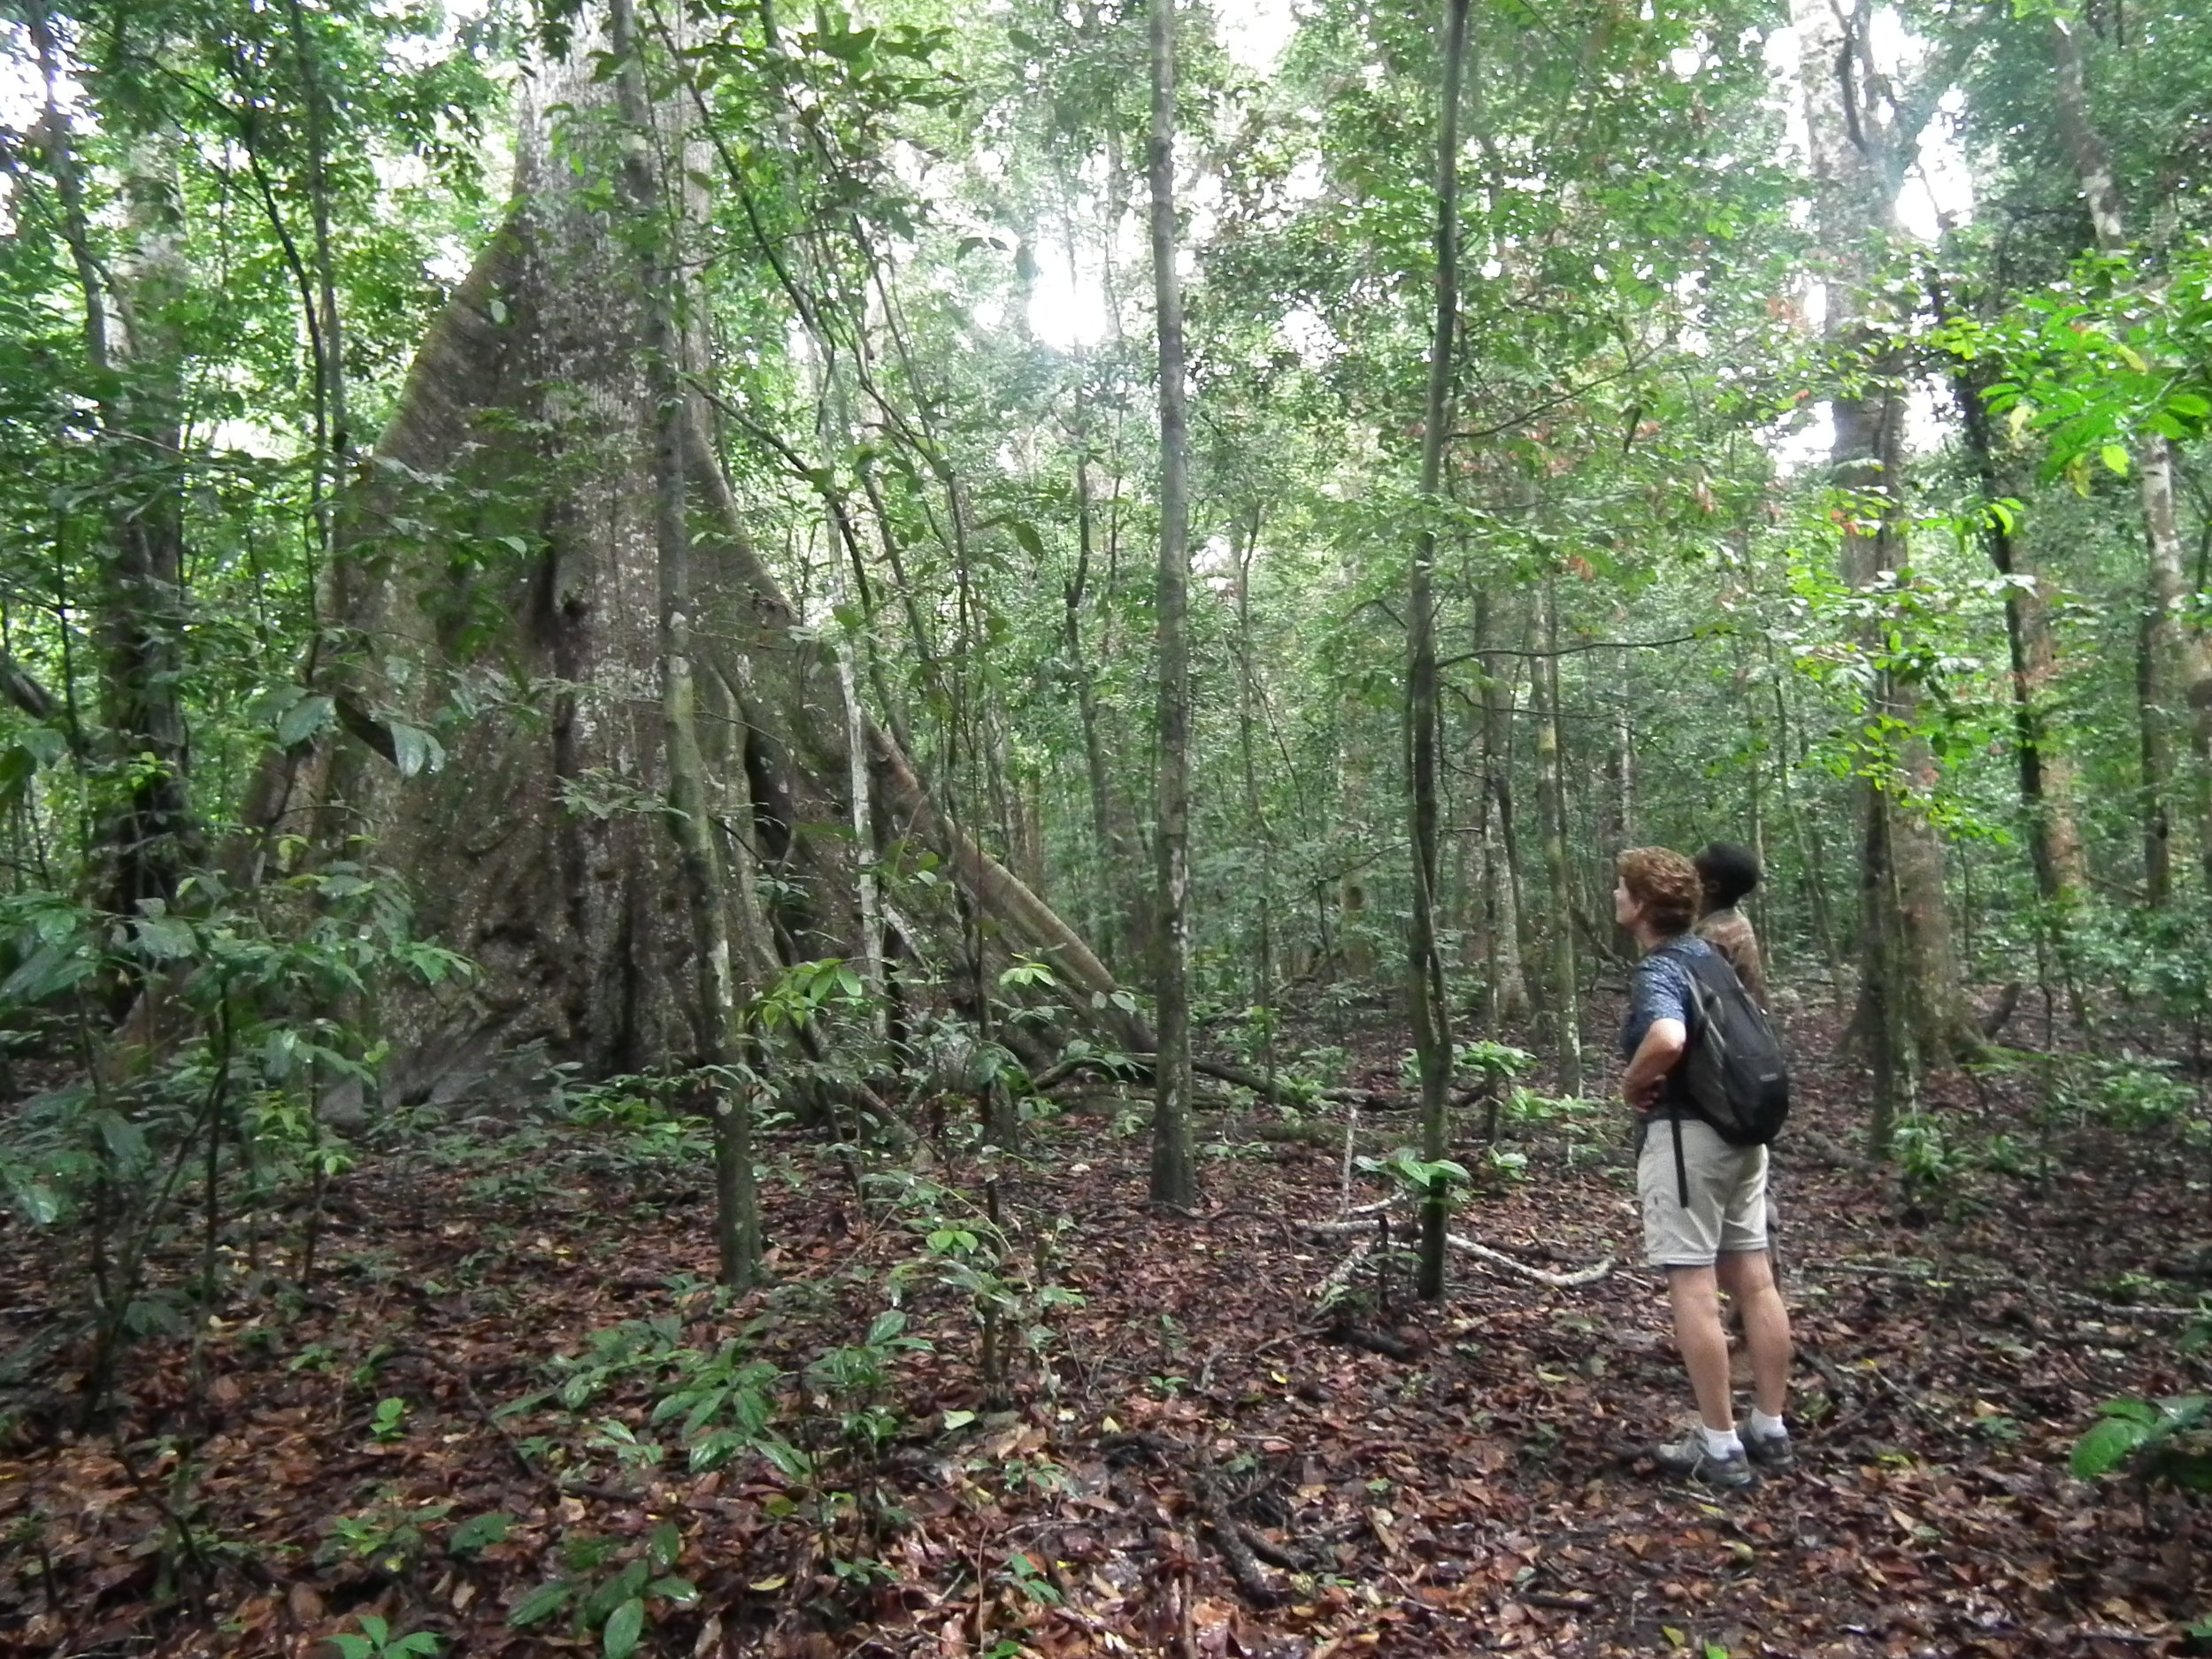 in search of lowland rainforest elephants. WE did eventually find one.